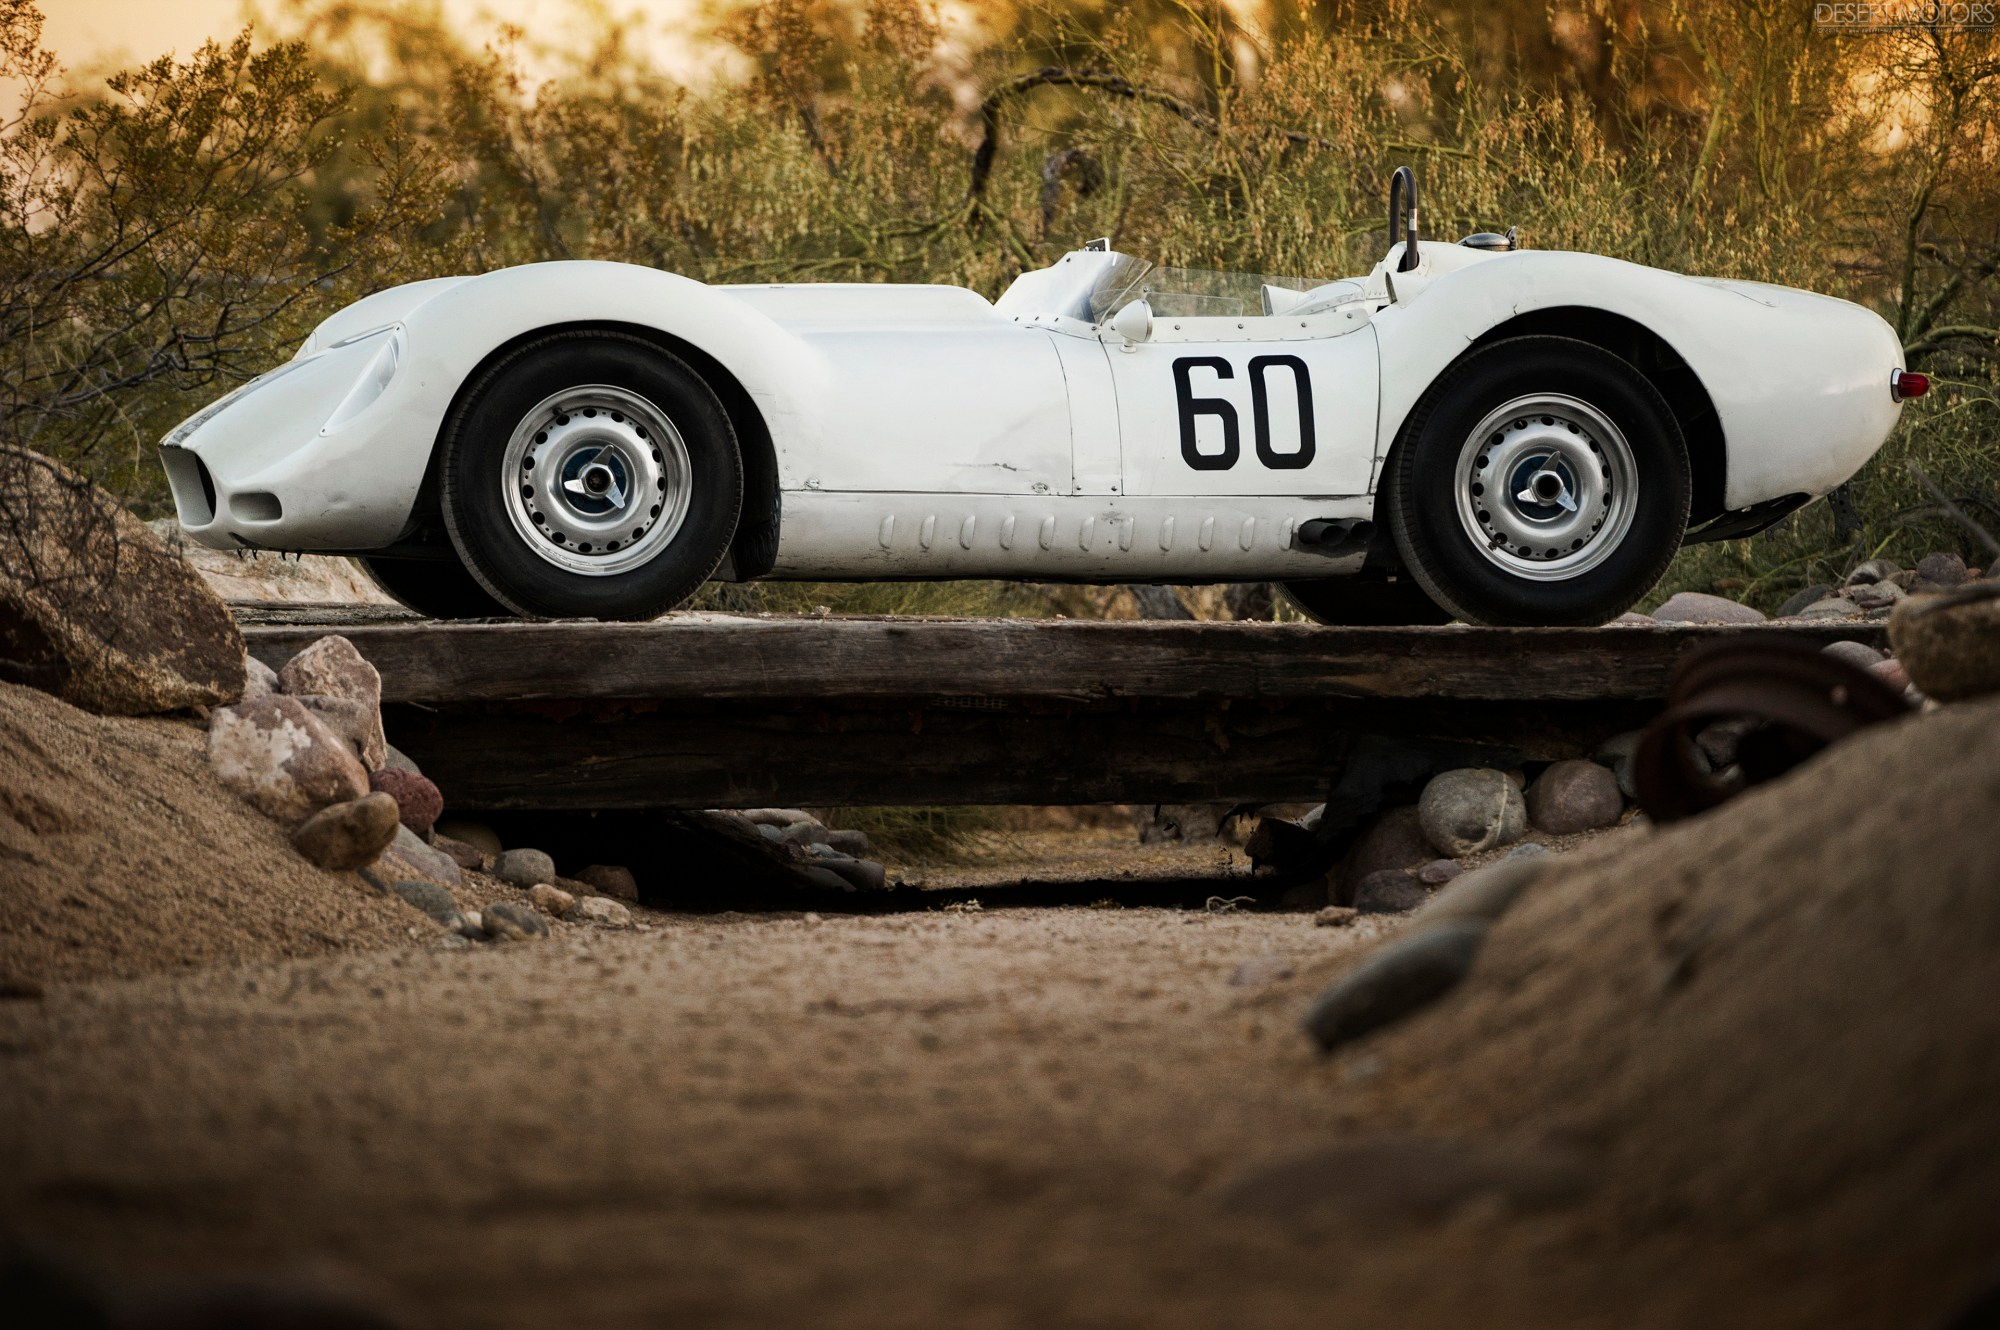 hight resolution of unrestored race cars are the best race cars 58 lister jaguar knobbly prototype oc os 3840x2555